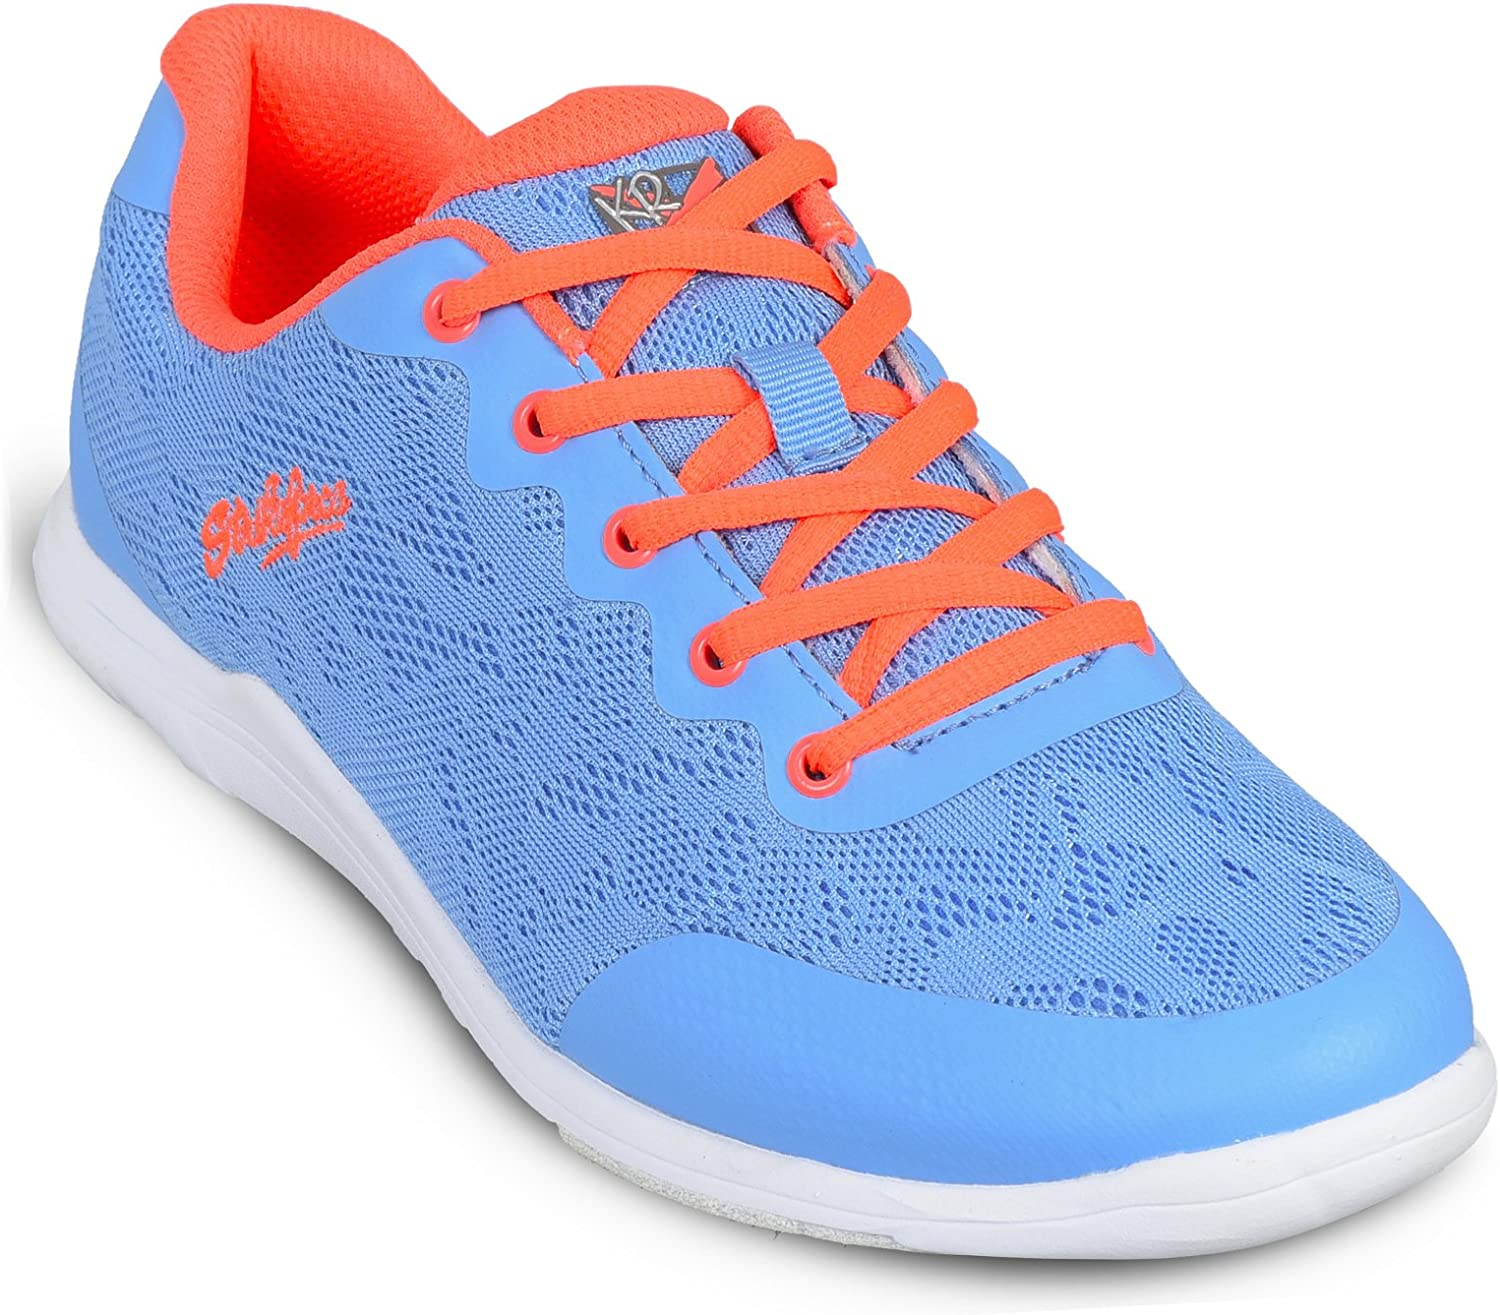 NEW WOMEN/'S  BOWLING SHOES BK//CORAL *ON SALE* SIZE 9/&1//2